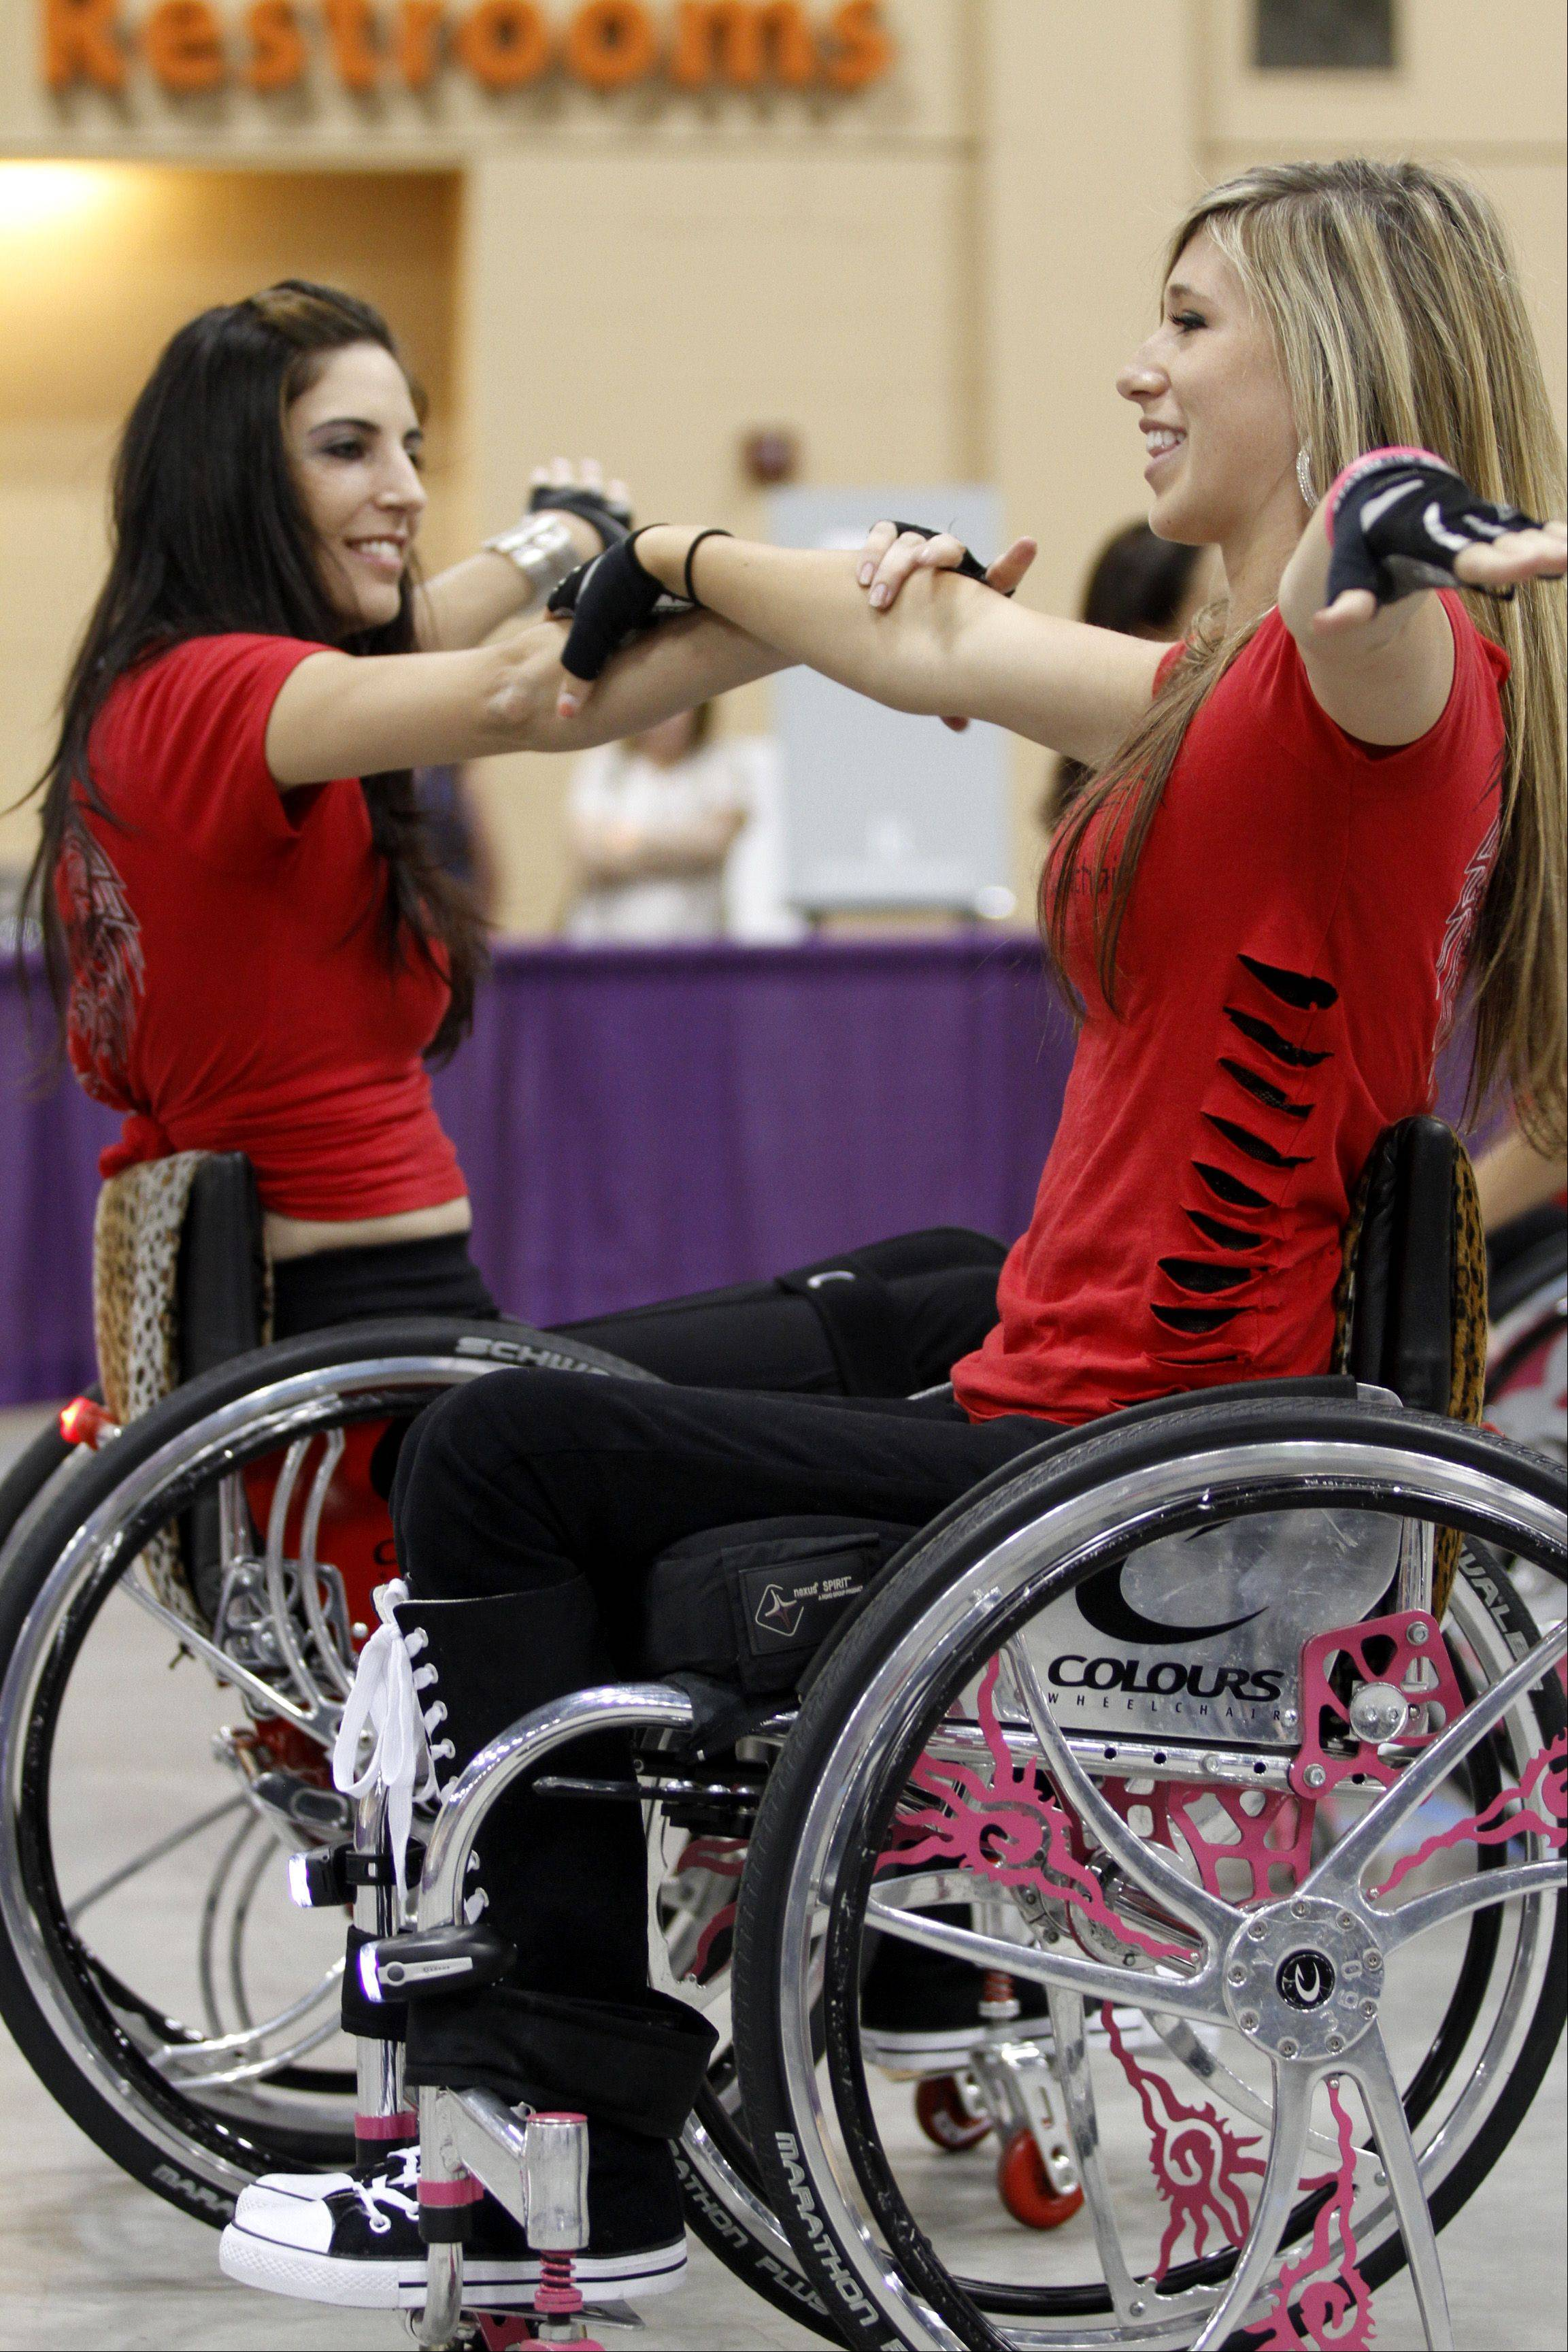 Chelsie Hill, right, from Monterey, Calif., and Mia Schailkewitz, from North Hollywood, Calif., perform a dance routine at the annual Abilities Expo on Sunday at the Schaumburg convention center. They are part of a wheelchair dance crew called Colors in Motion.